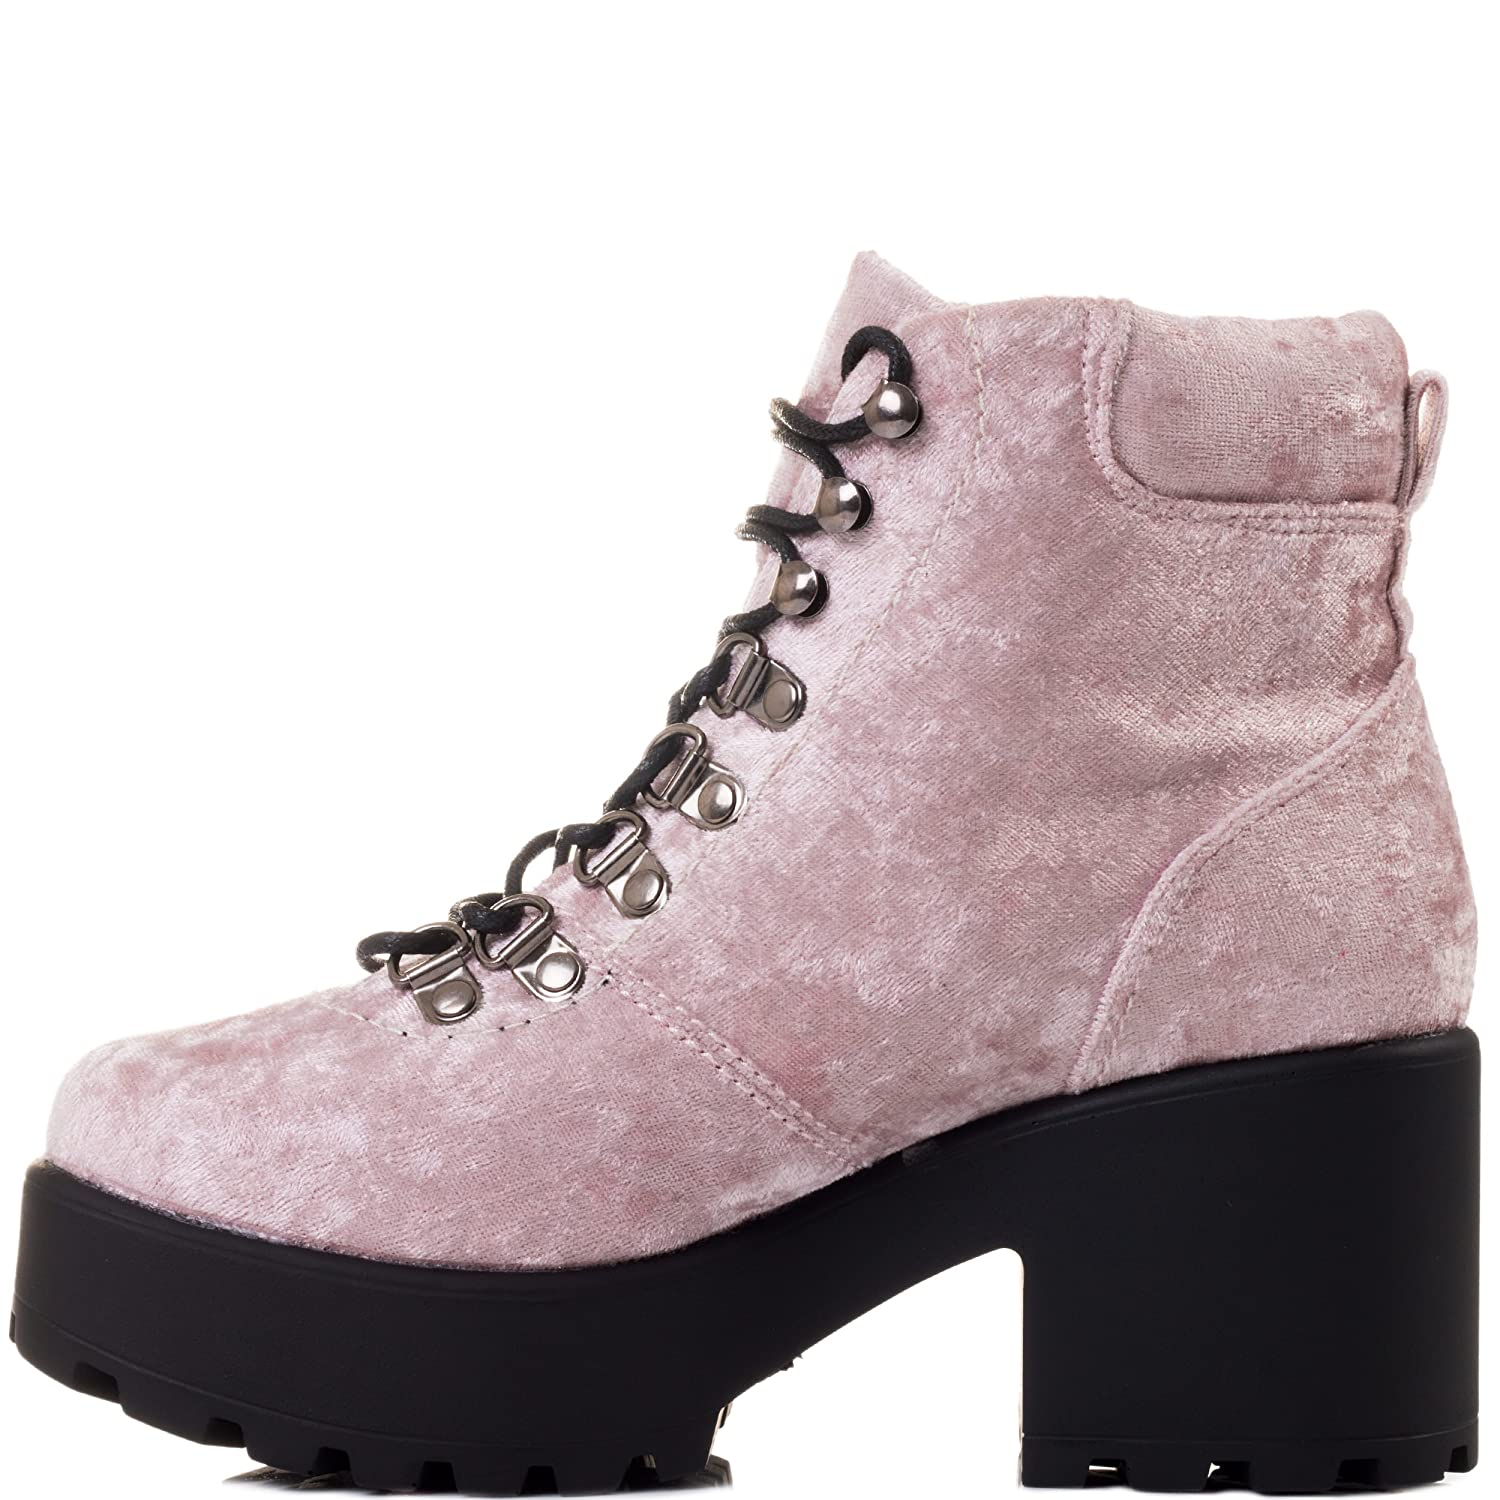 Spylovebuy Shotgun Block Heel Cleated Ankle Sole Lace up Platform Ankle Cleated Boots B07C571ZHR 5 B(M) US|Shotgun 3 - Pink Velvet Style e1cddb